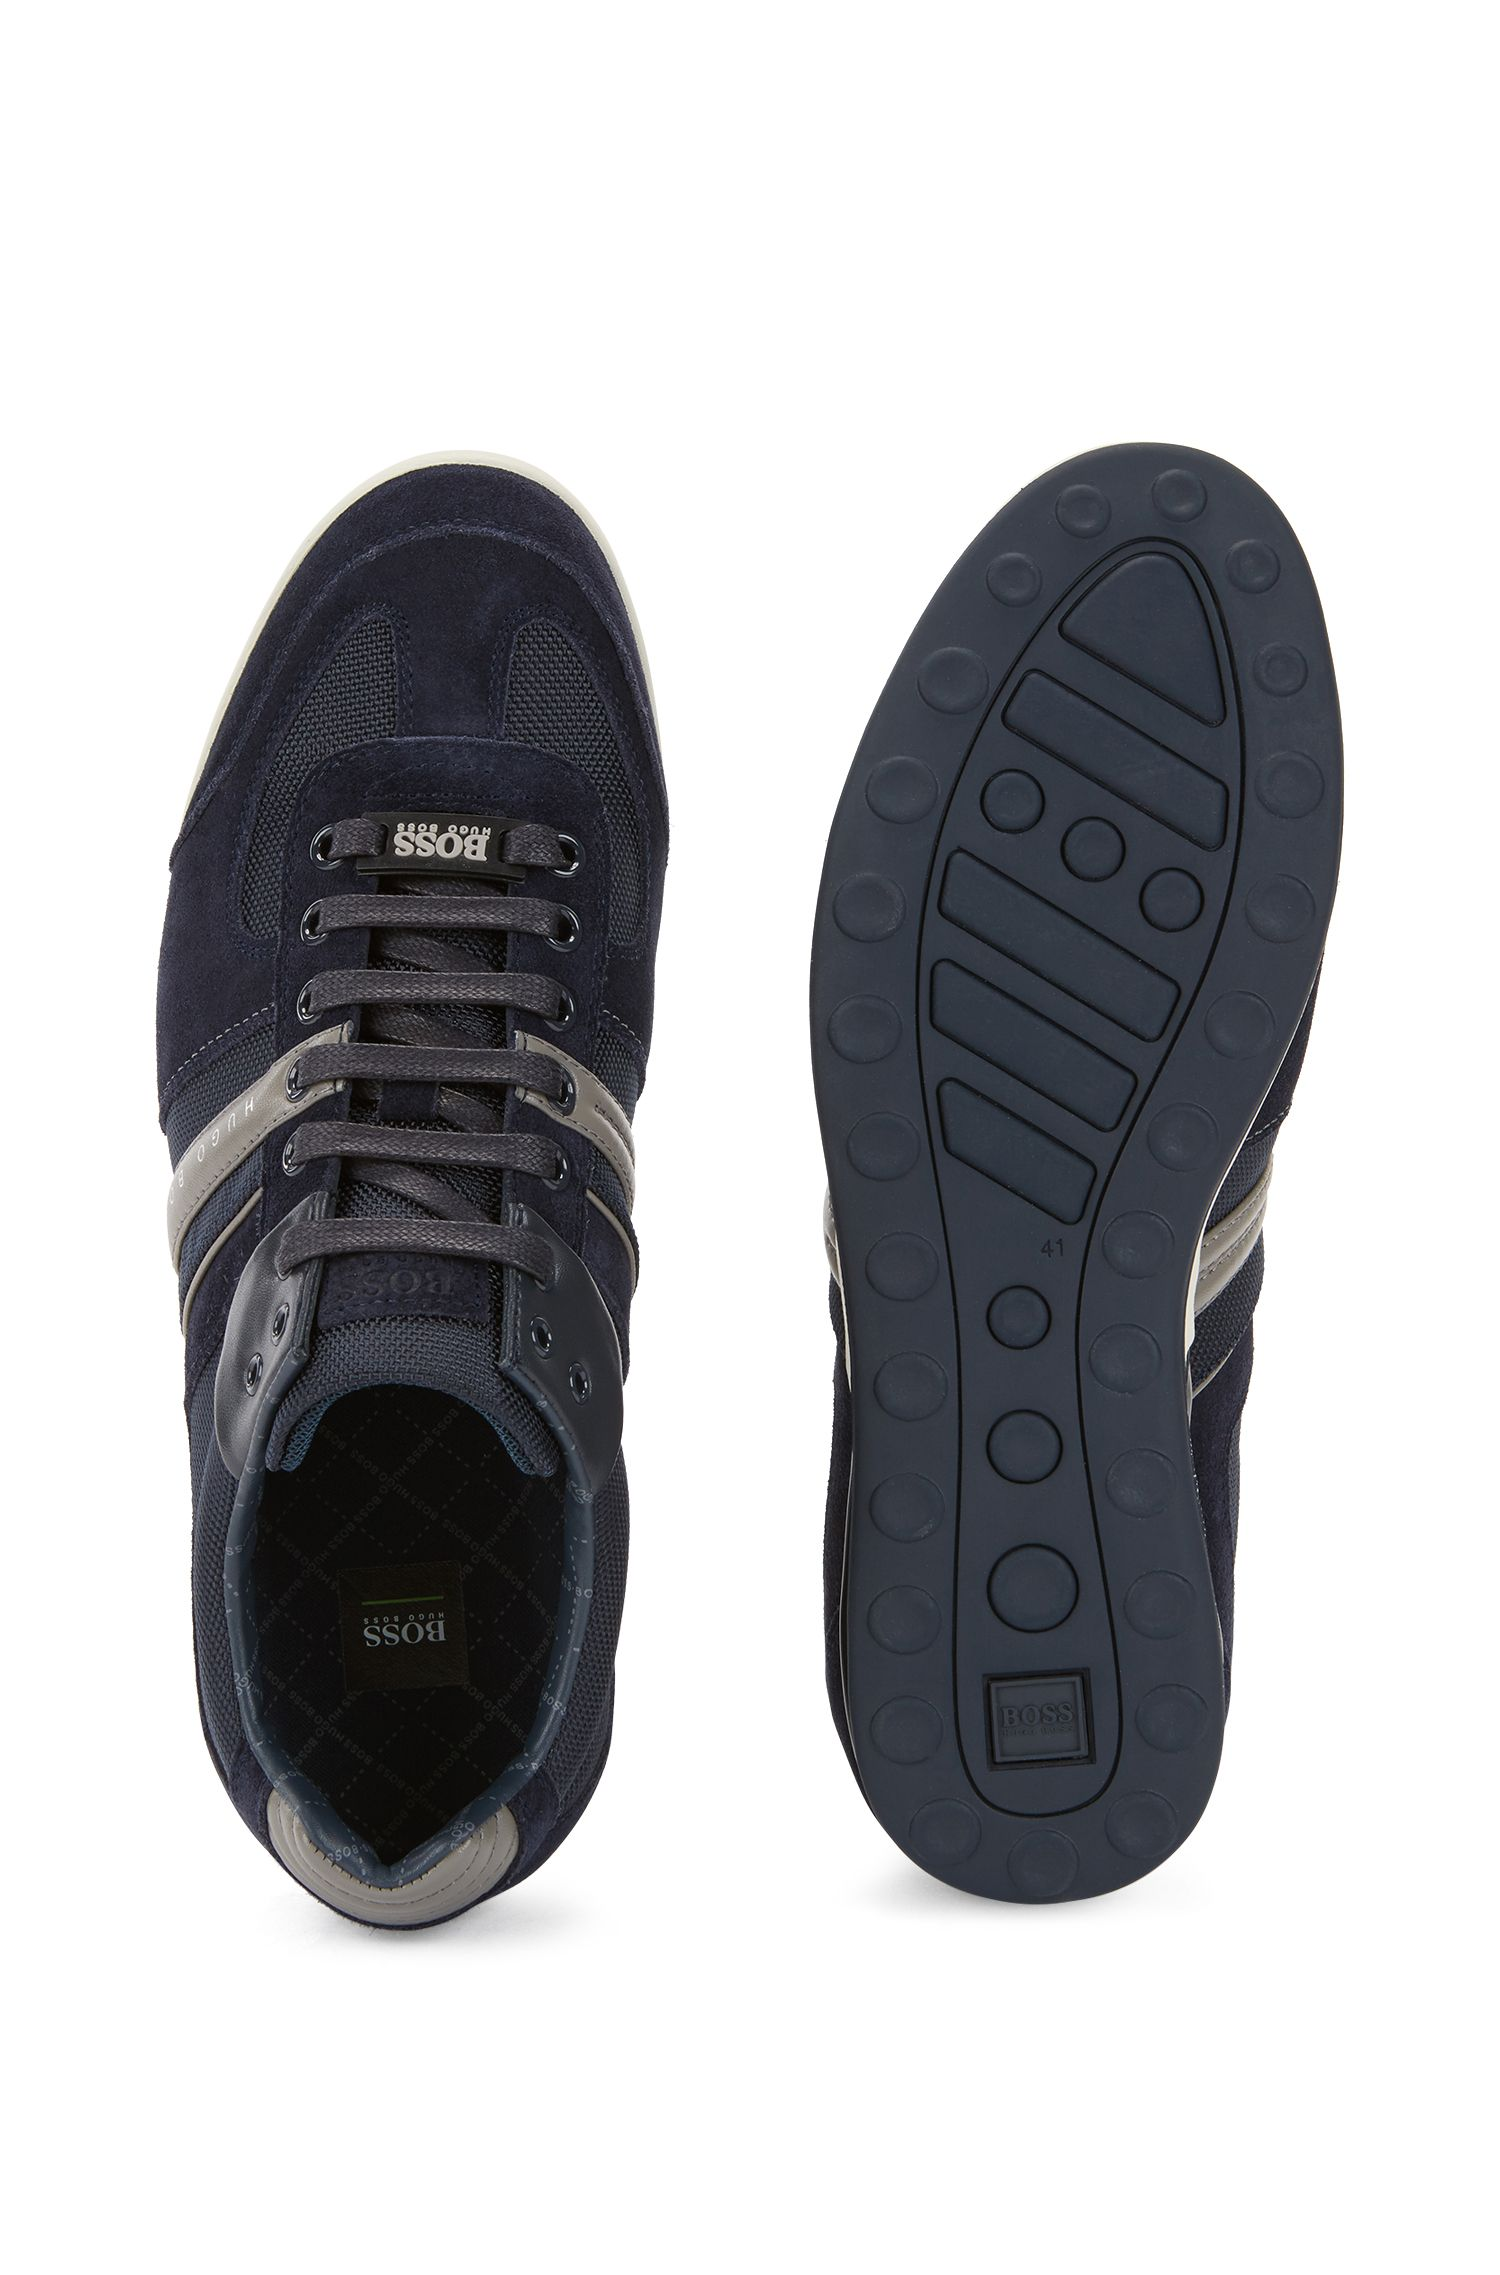 Schlichte Sneakers mit Hightech-Konstruktion, Blau